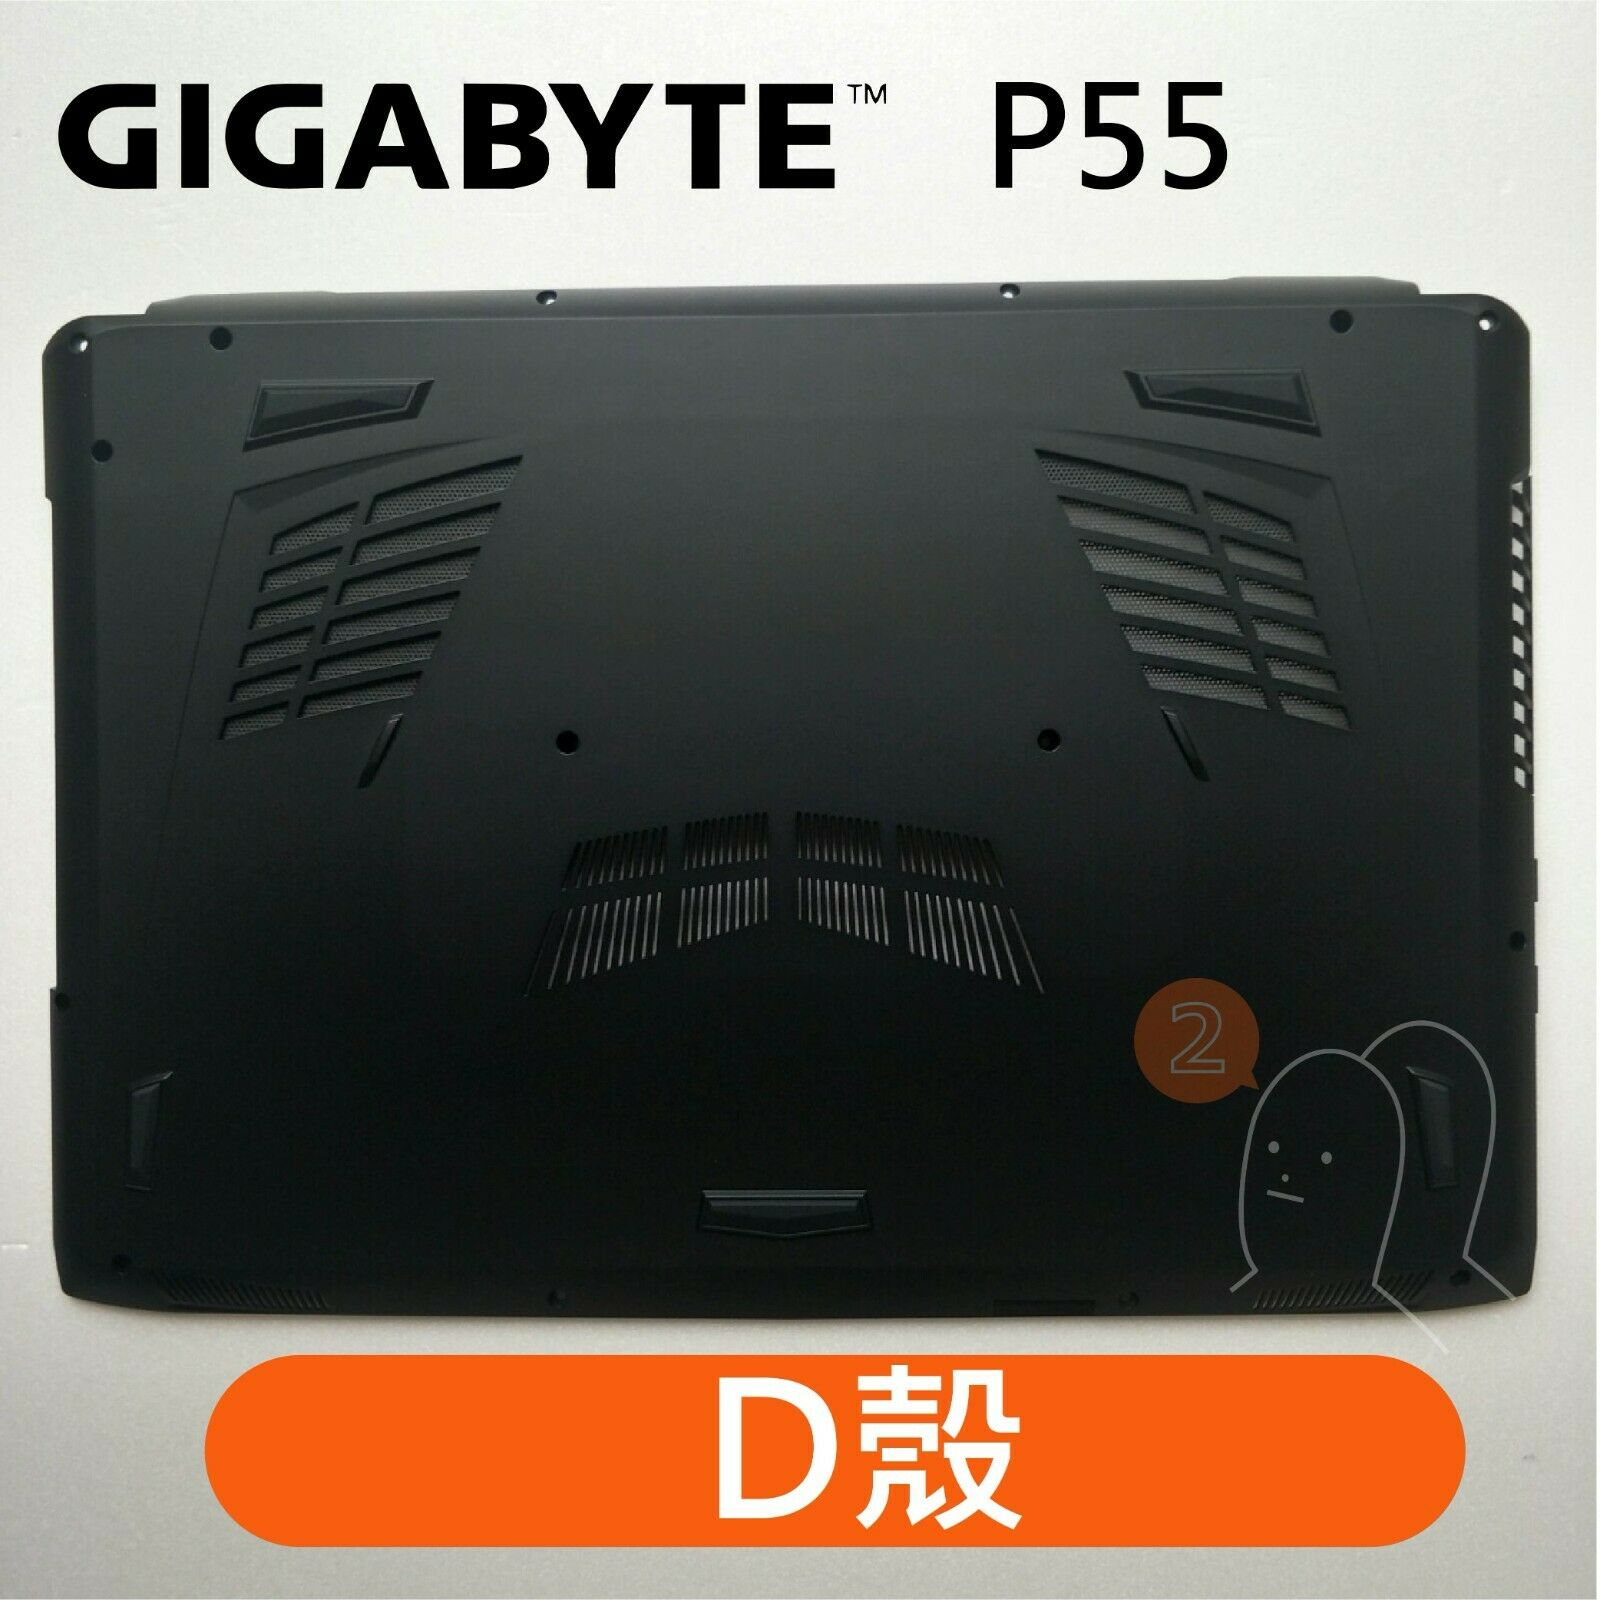 【2p3c】Replacement for GIGABYTE P55 Laptop LCD Cover : D(Bottom Base)